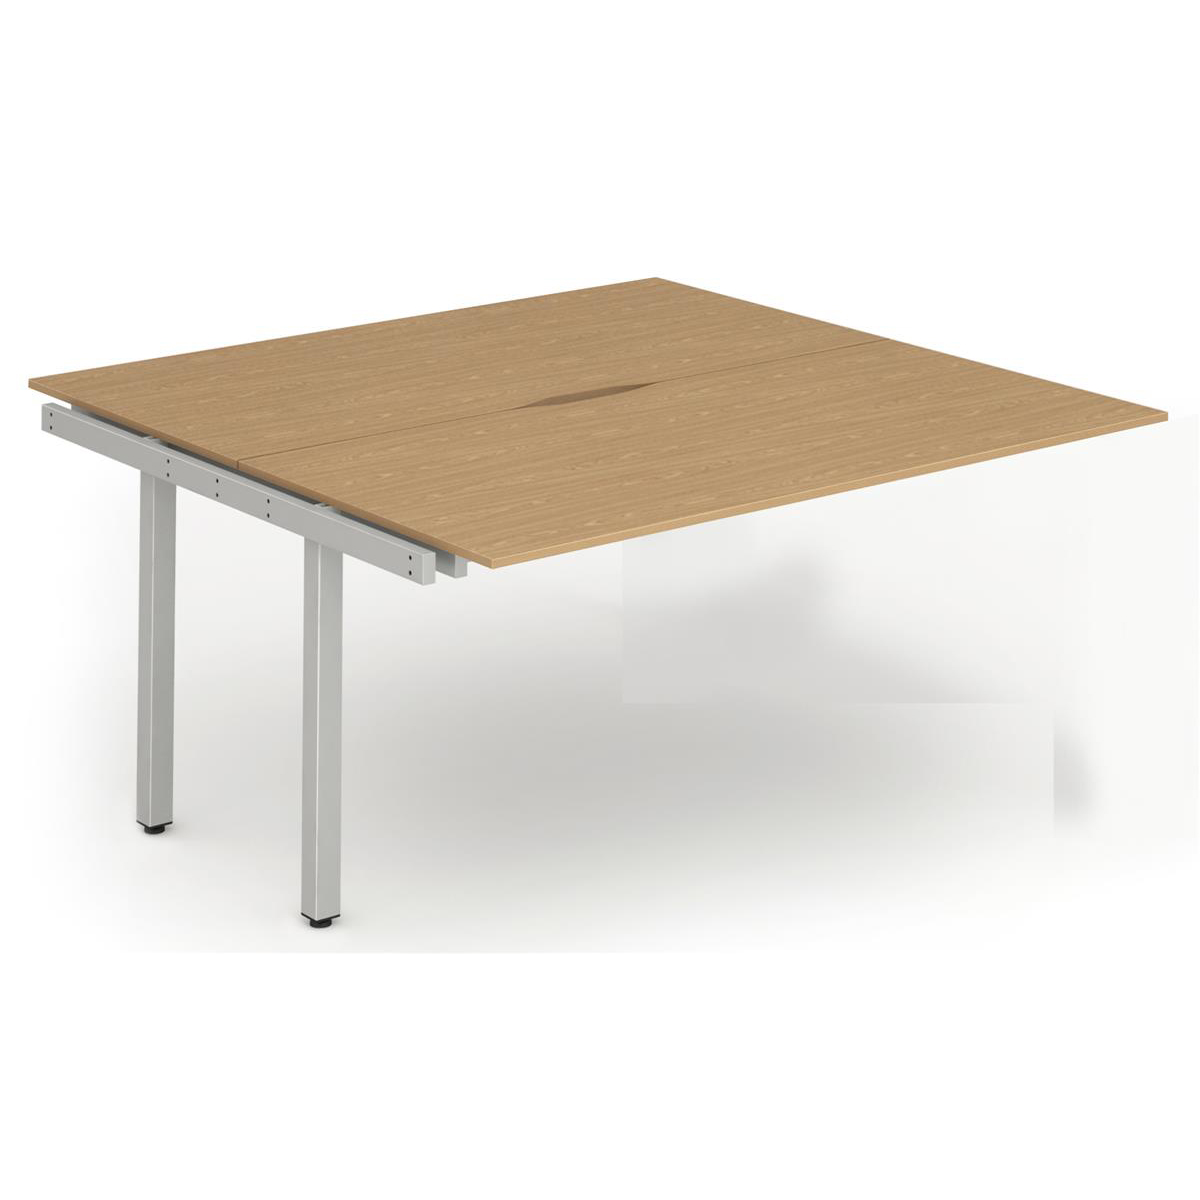 Trexus Bench Desk Double Extension Back to Back Configuration Silver Leg 1200x1600mm Oak Ref BE218